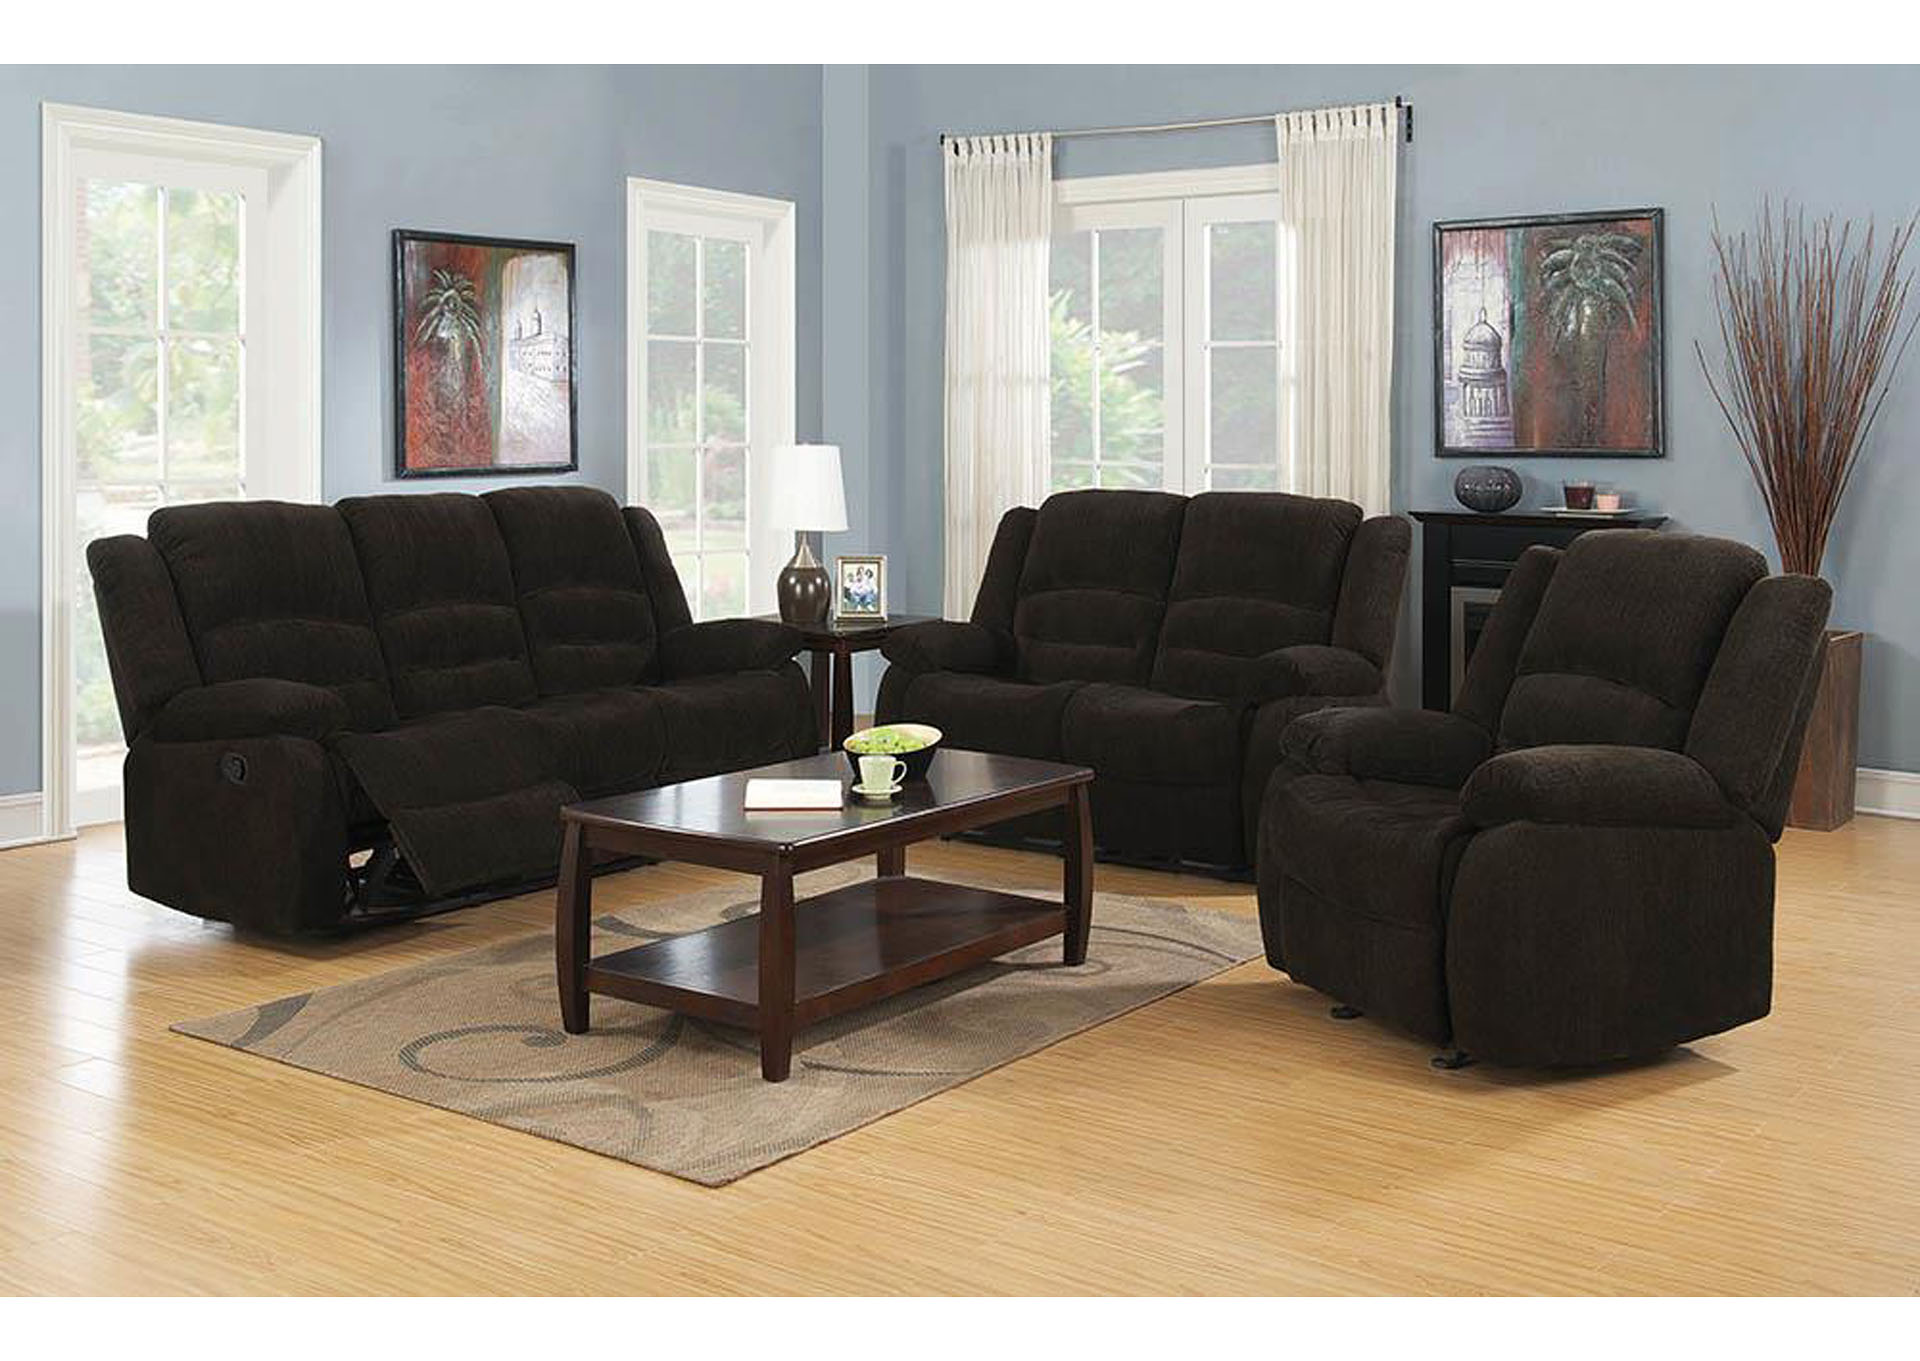 Gordon Dark Brown Motion Sofa,ABF Coaster Furniture